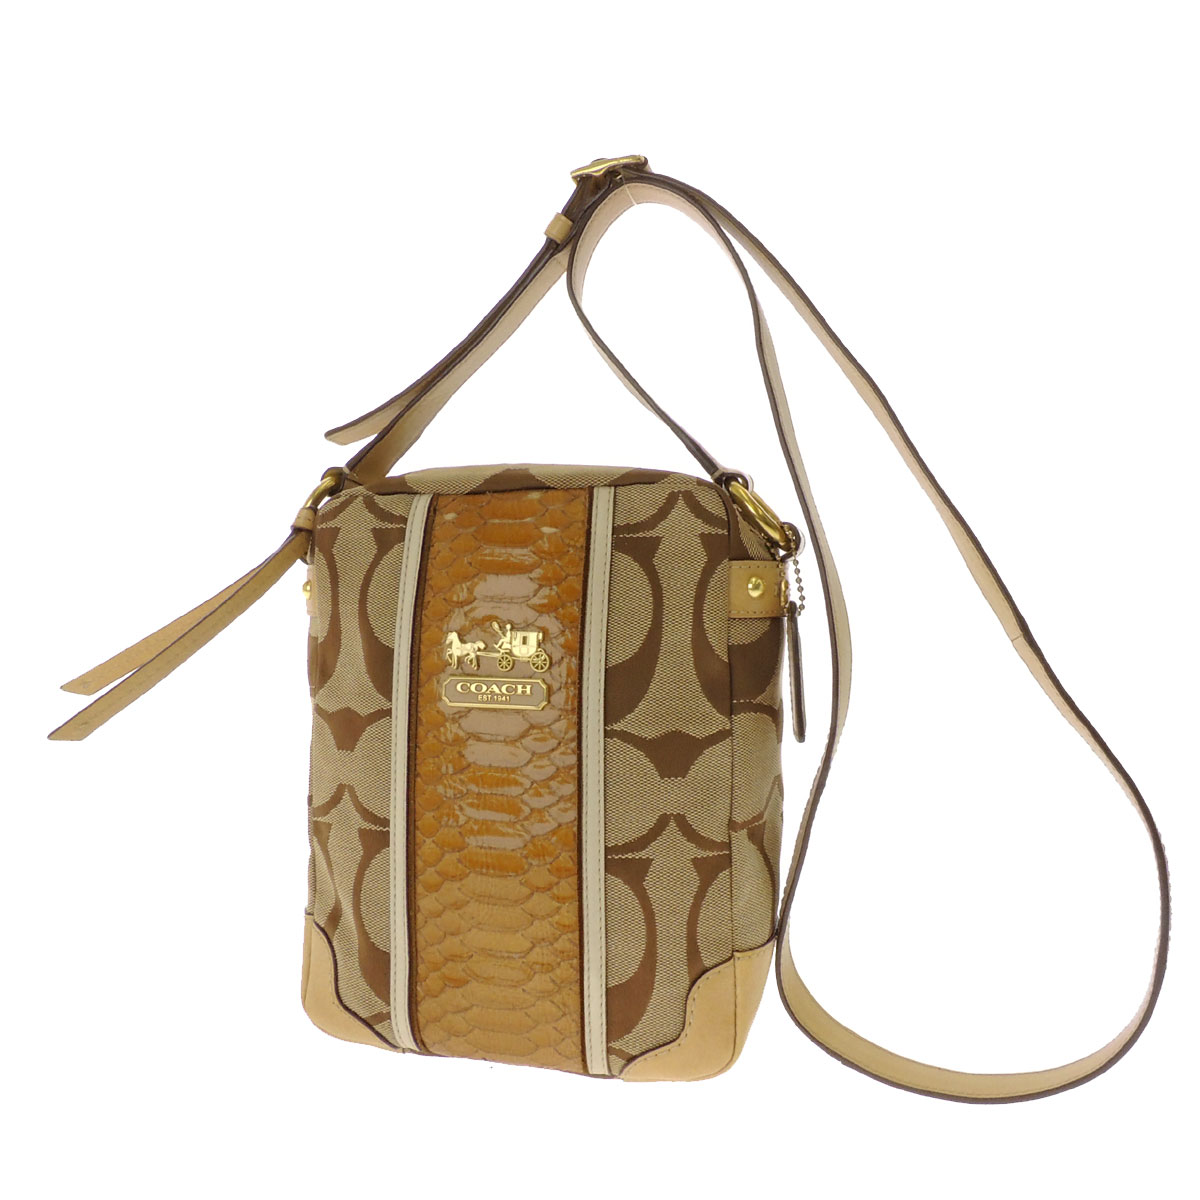 Shoulder bag canvas X leather Lady's with the COACH signature pattern logo